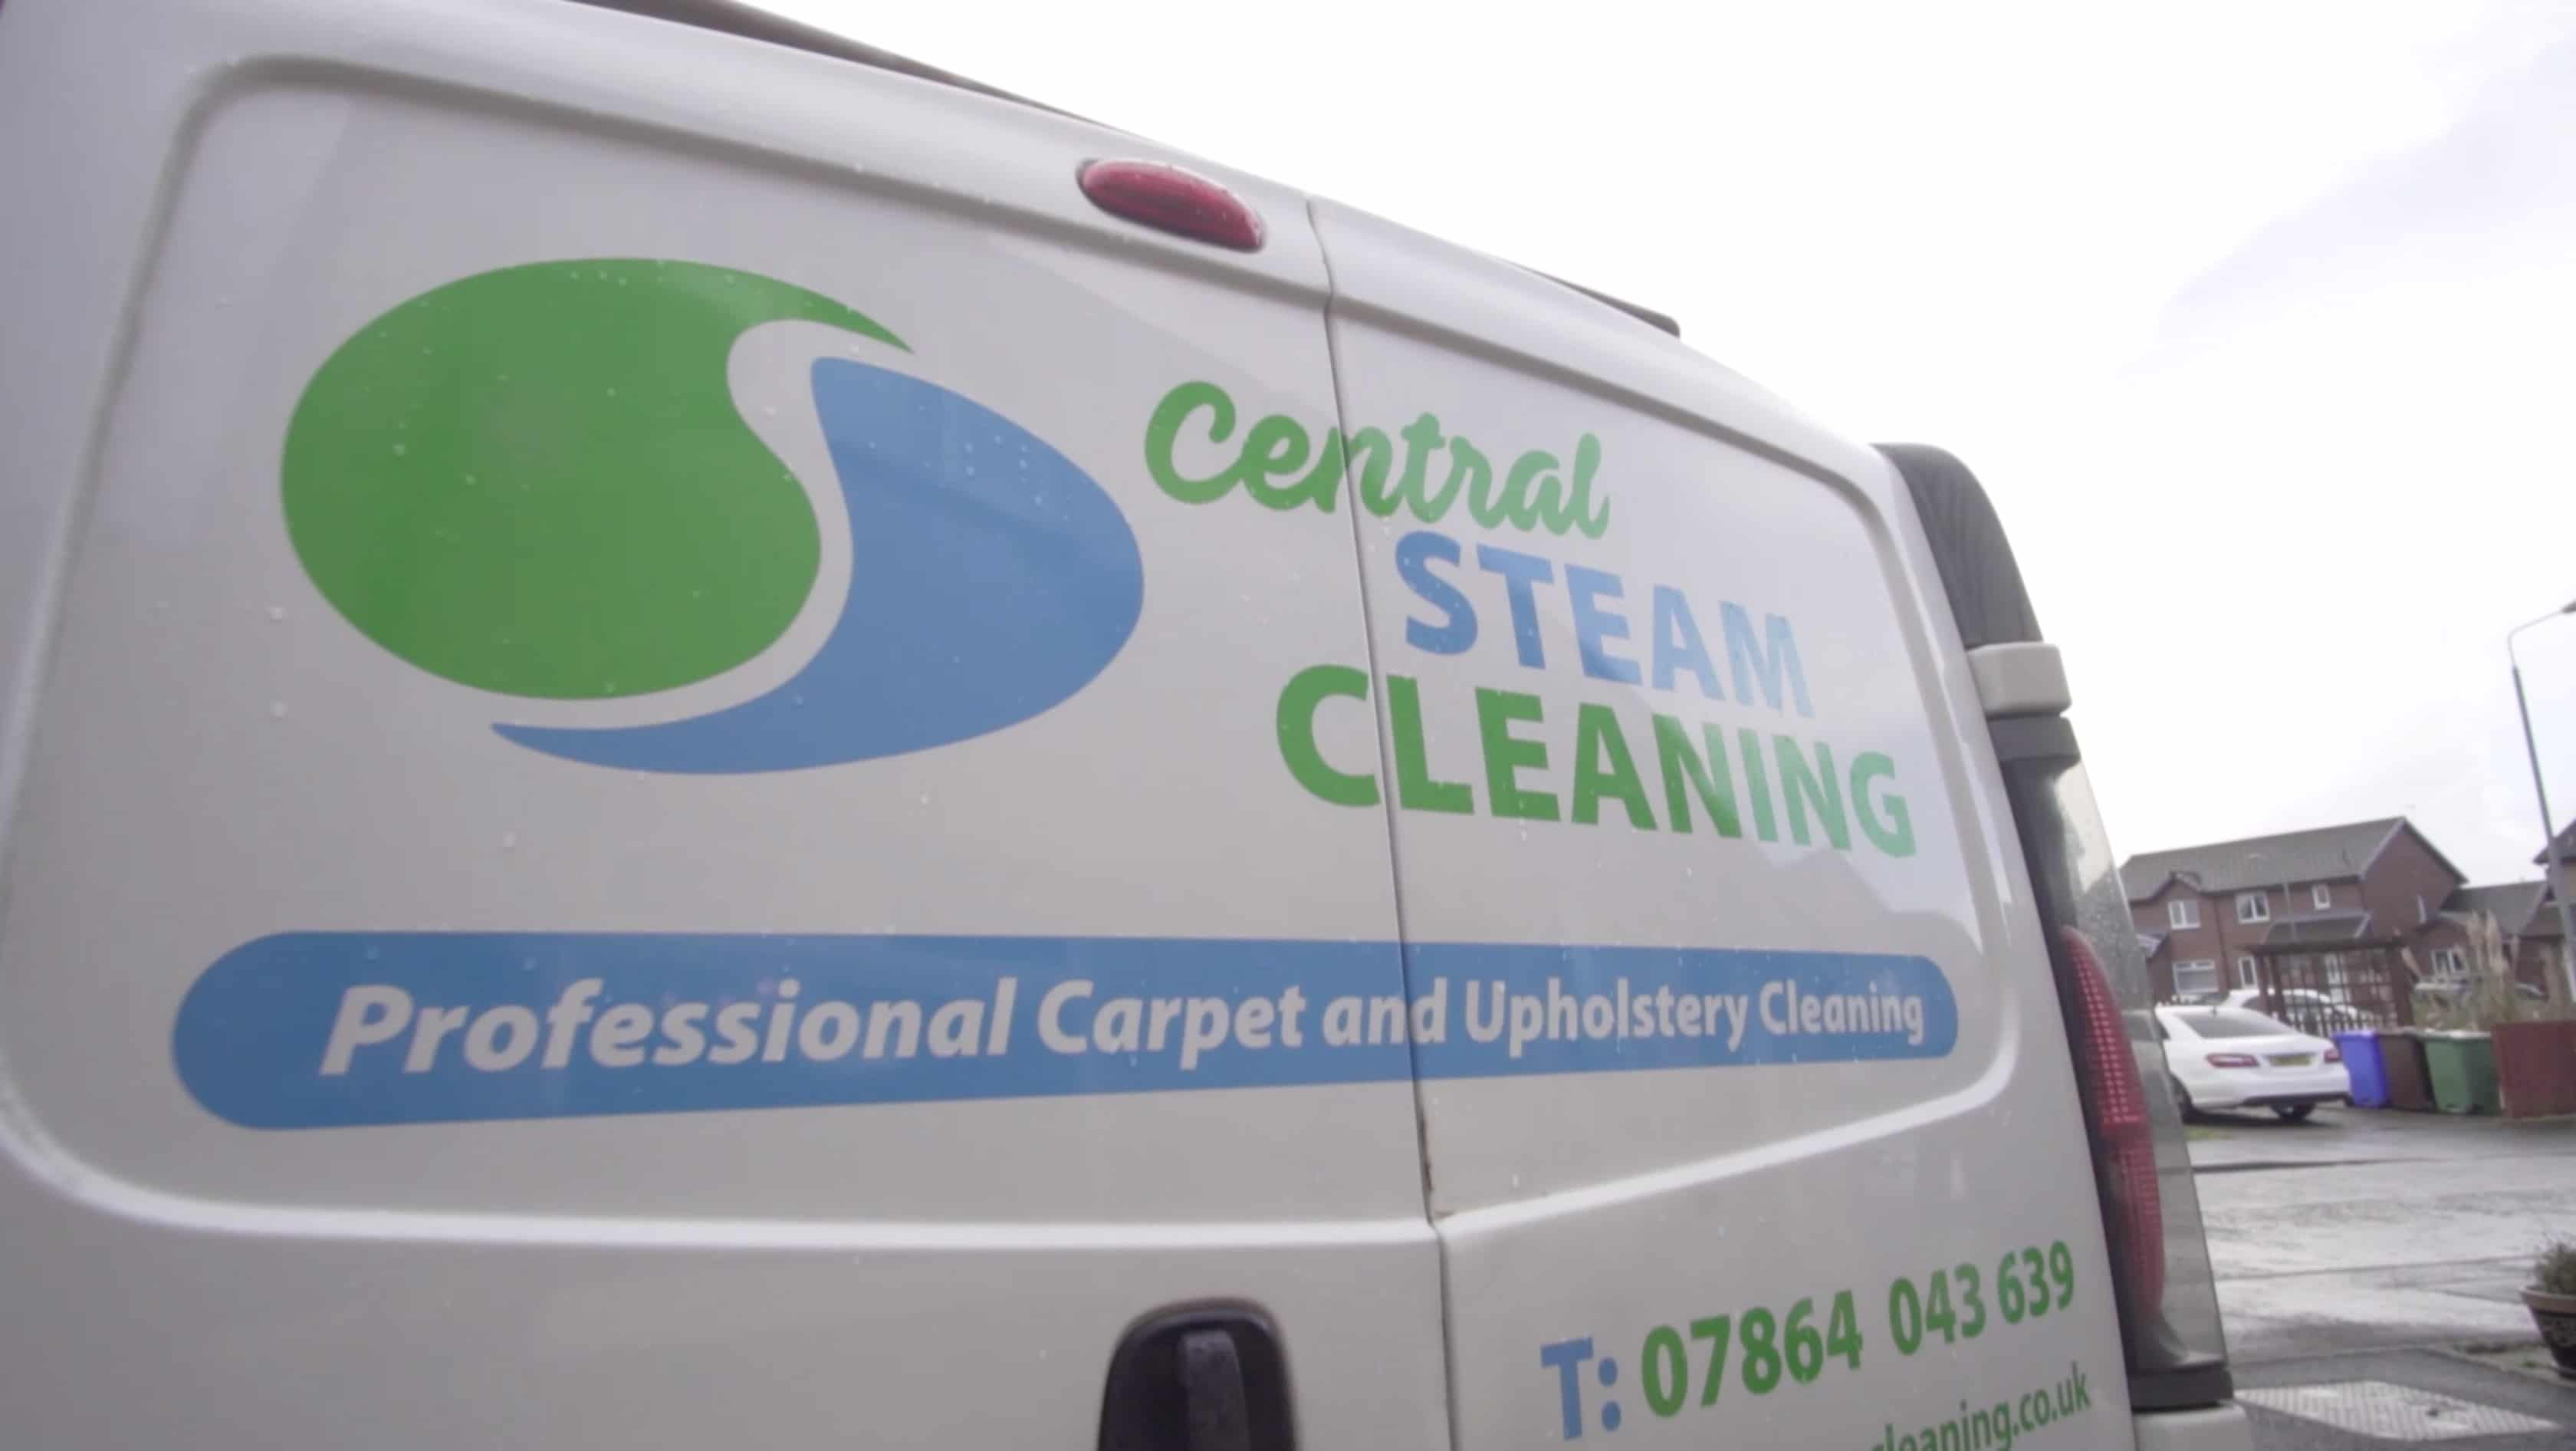 Carpet Cleaner Stirling back of van Central Steam Cleaning